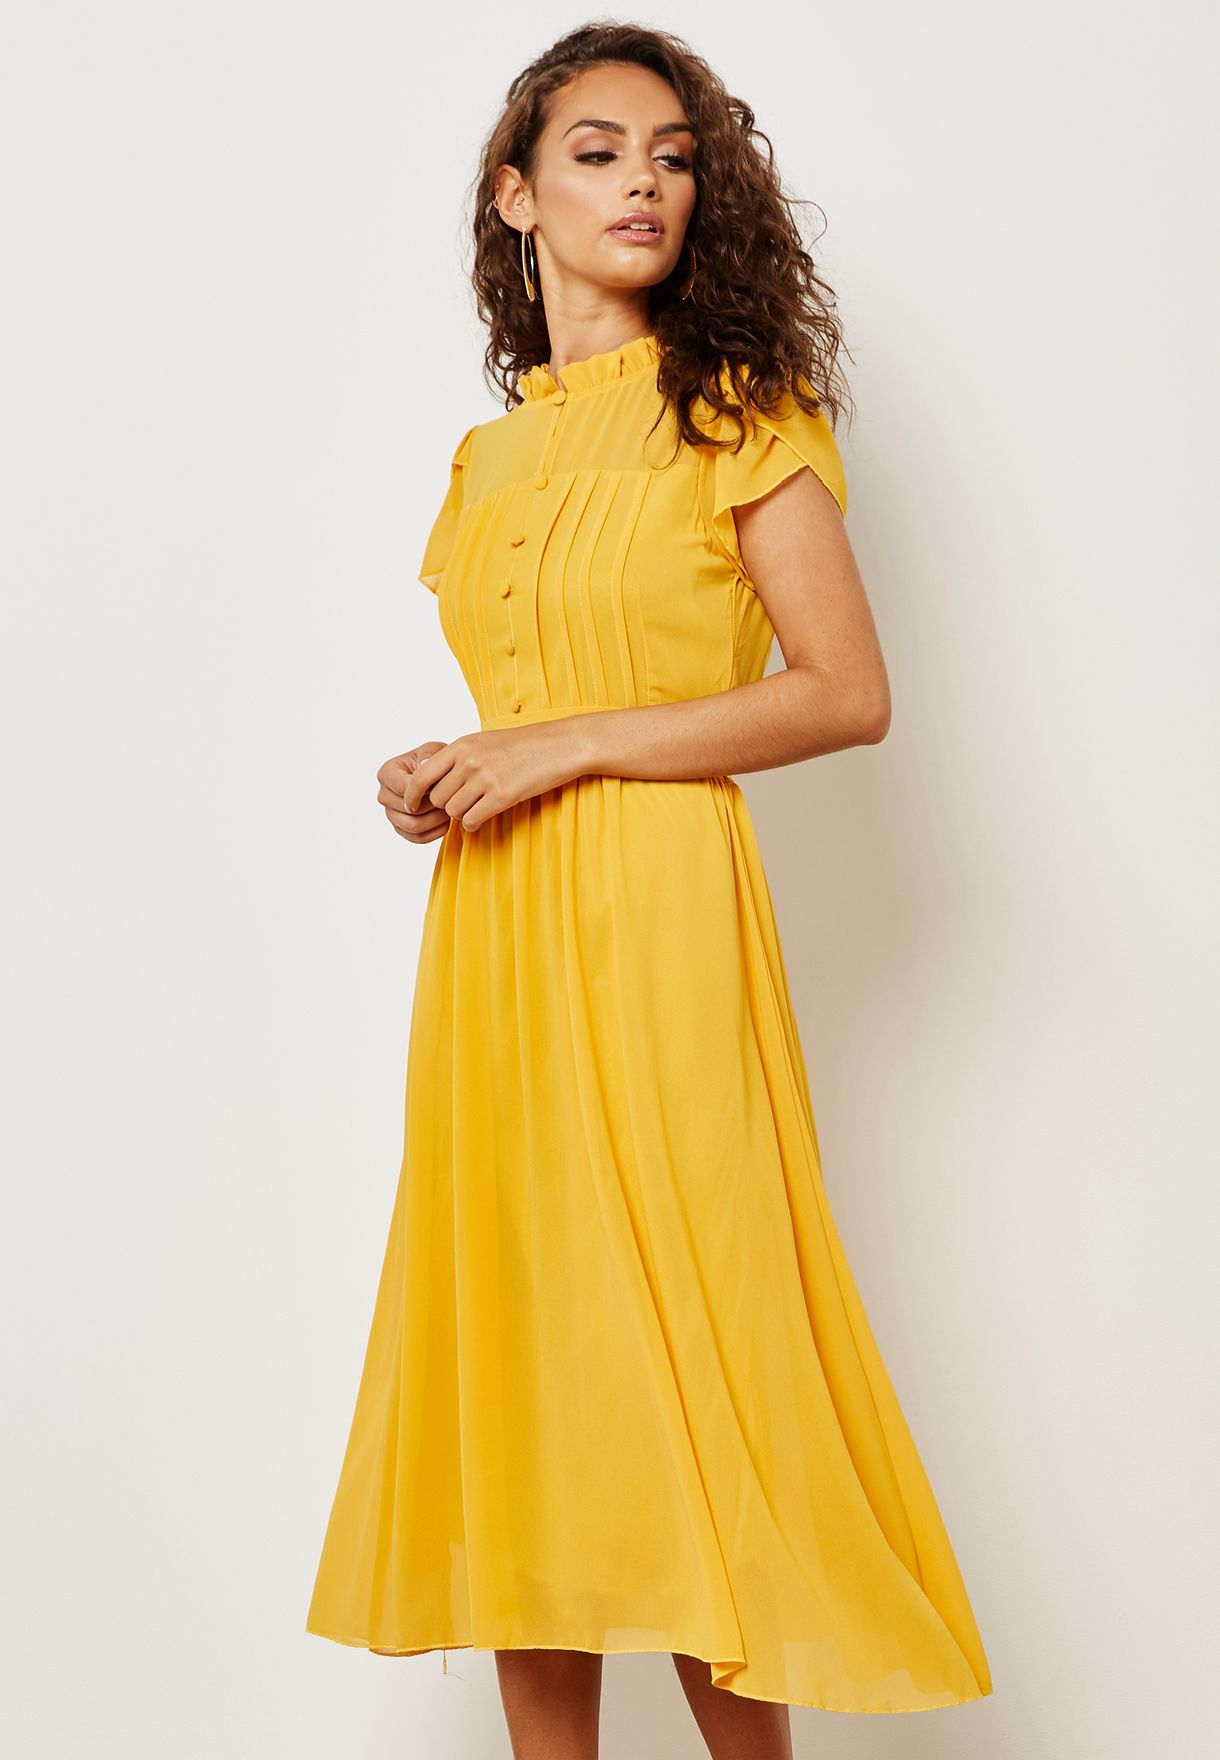 af3c558af Shop Ella yellow Ruffle Pleated Self Tie Midi Dress 6002(6008) for ...